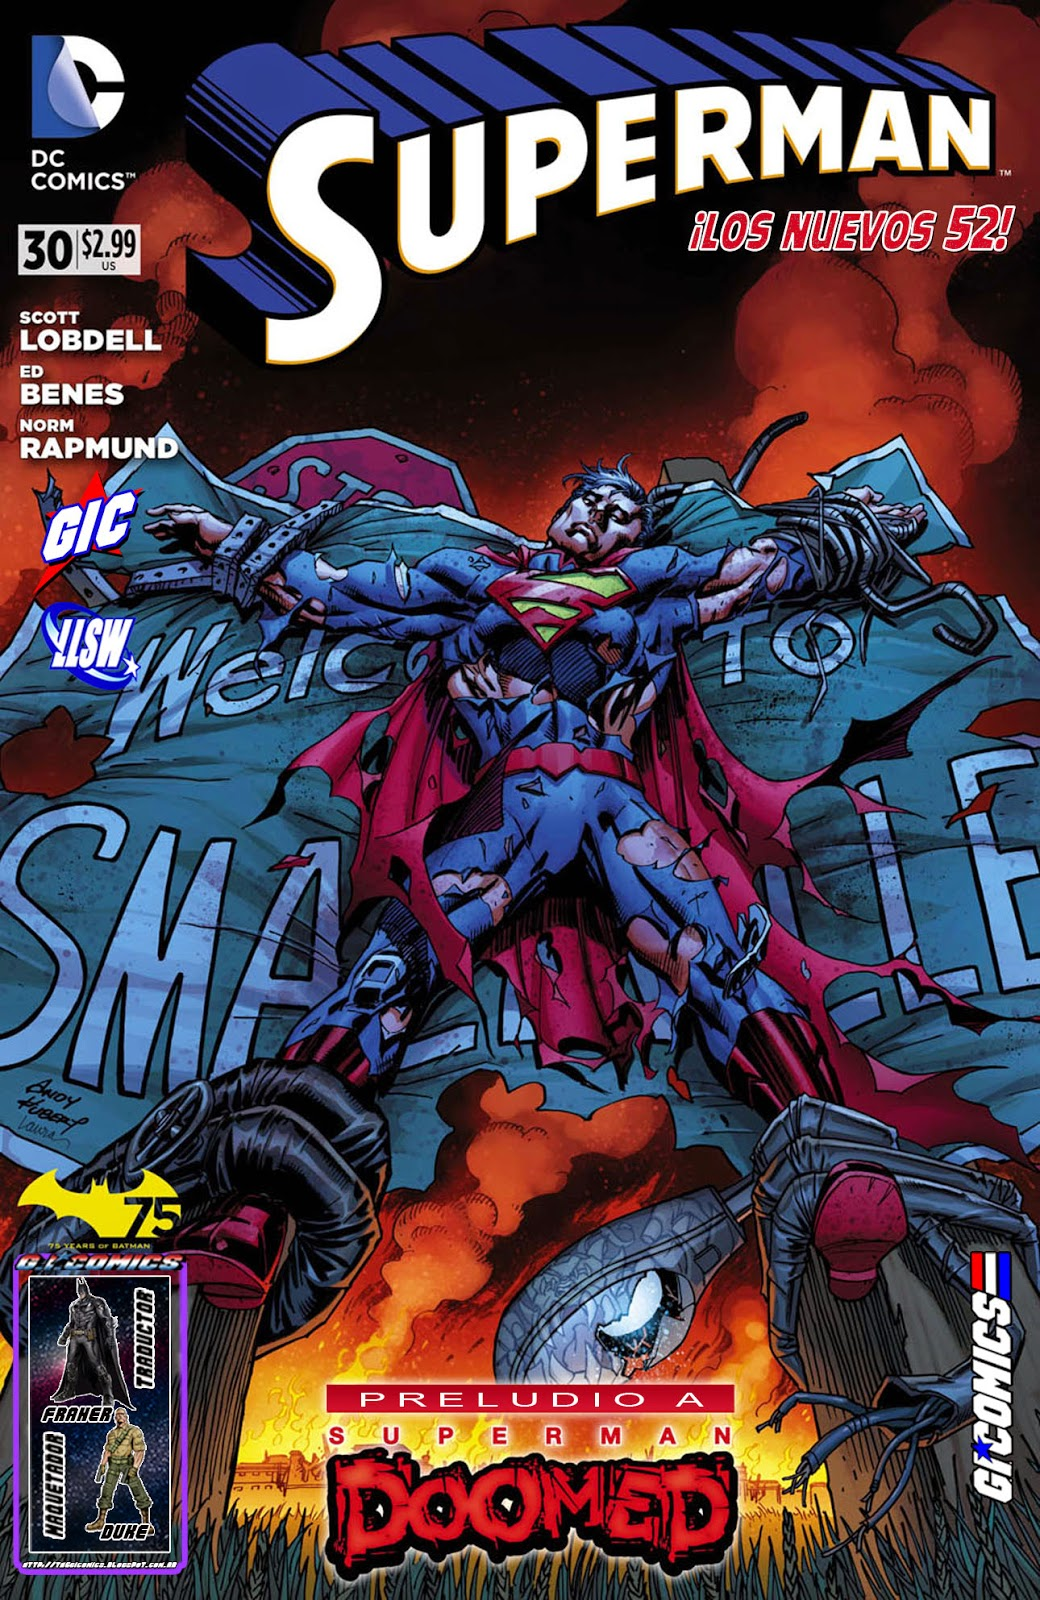 http://www.mediafire.com/download/jcgqdra1nqht60q/SUPERMAN+30+GI+COMICS-LLSW%28Fraher-Duke%29.cbr